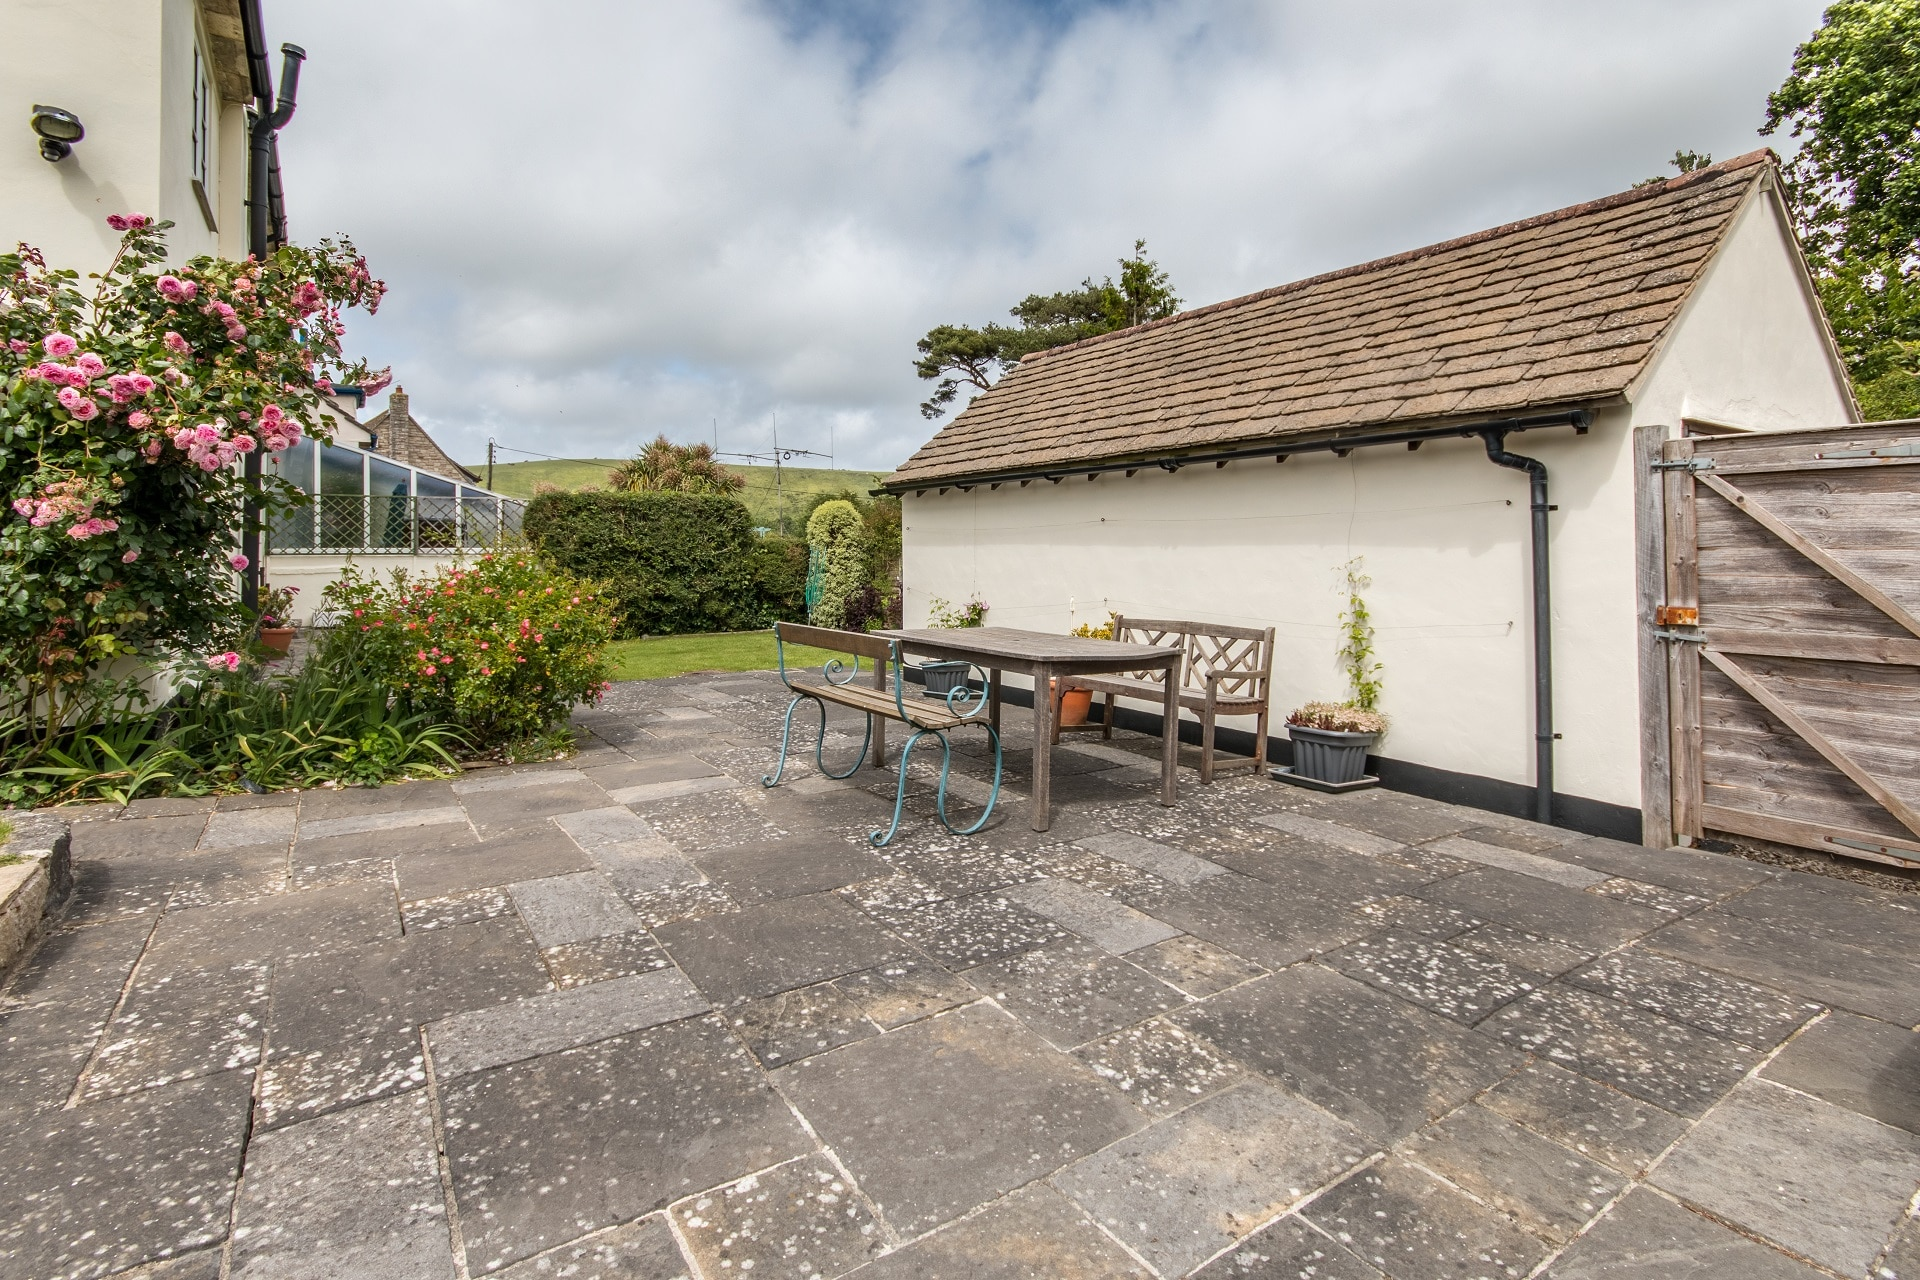 family_holiday home in corfe castle garden patio 2